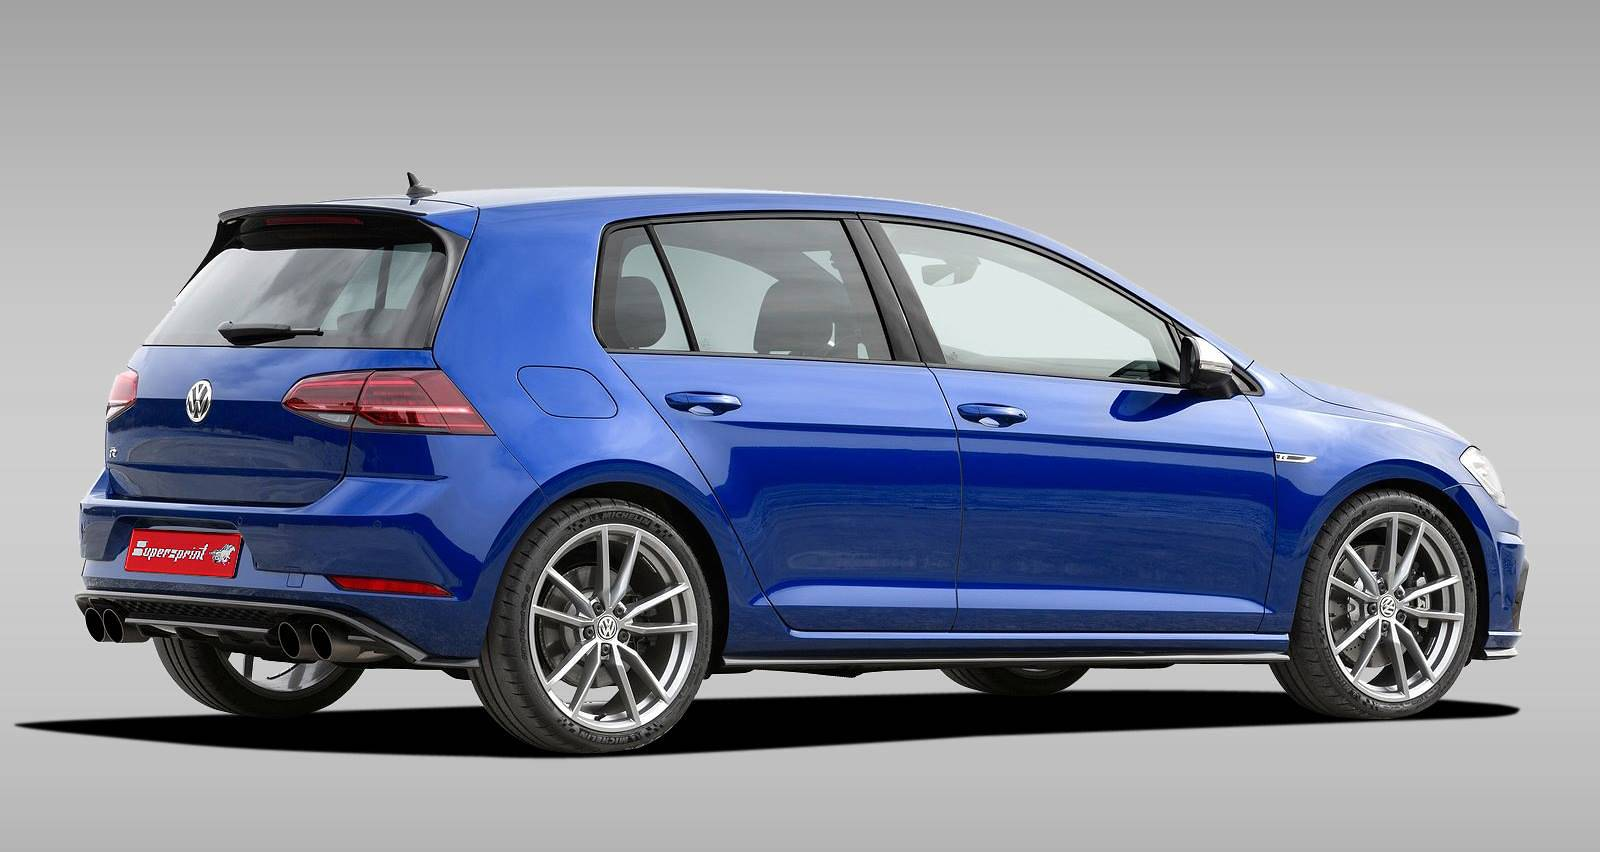 vw golf vii 1 4 tsi 122 ps 140 ps 2012 supersprint. Black Bedroom Furniture Sets. Home Design Ideas